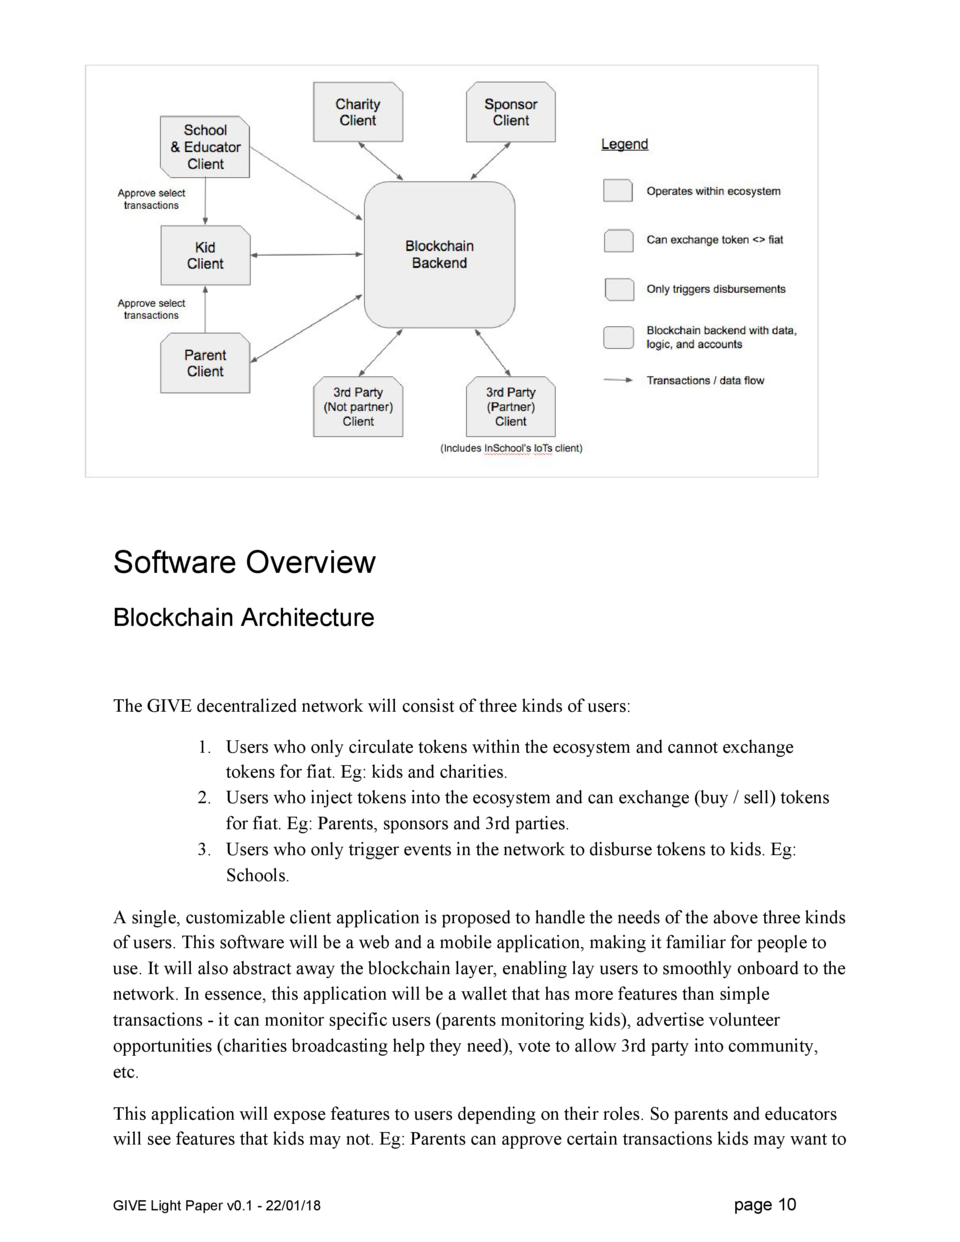 Software Overview Blockchain Architecture  The GIVE decentralized network will consist of three kinds of users  1. Users w...